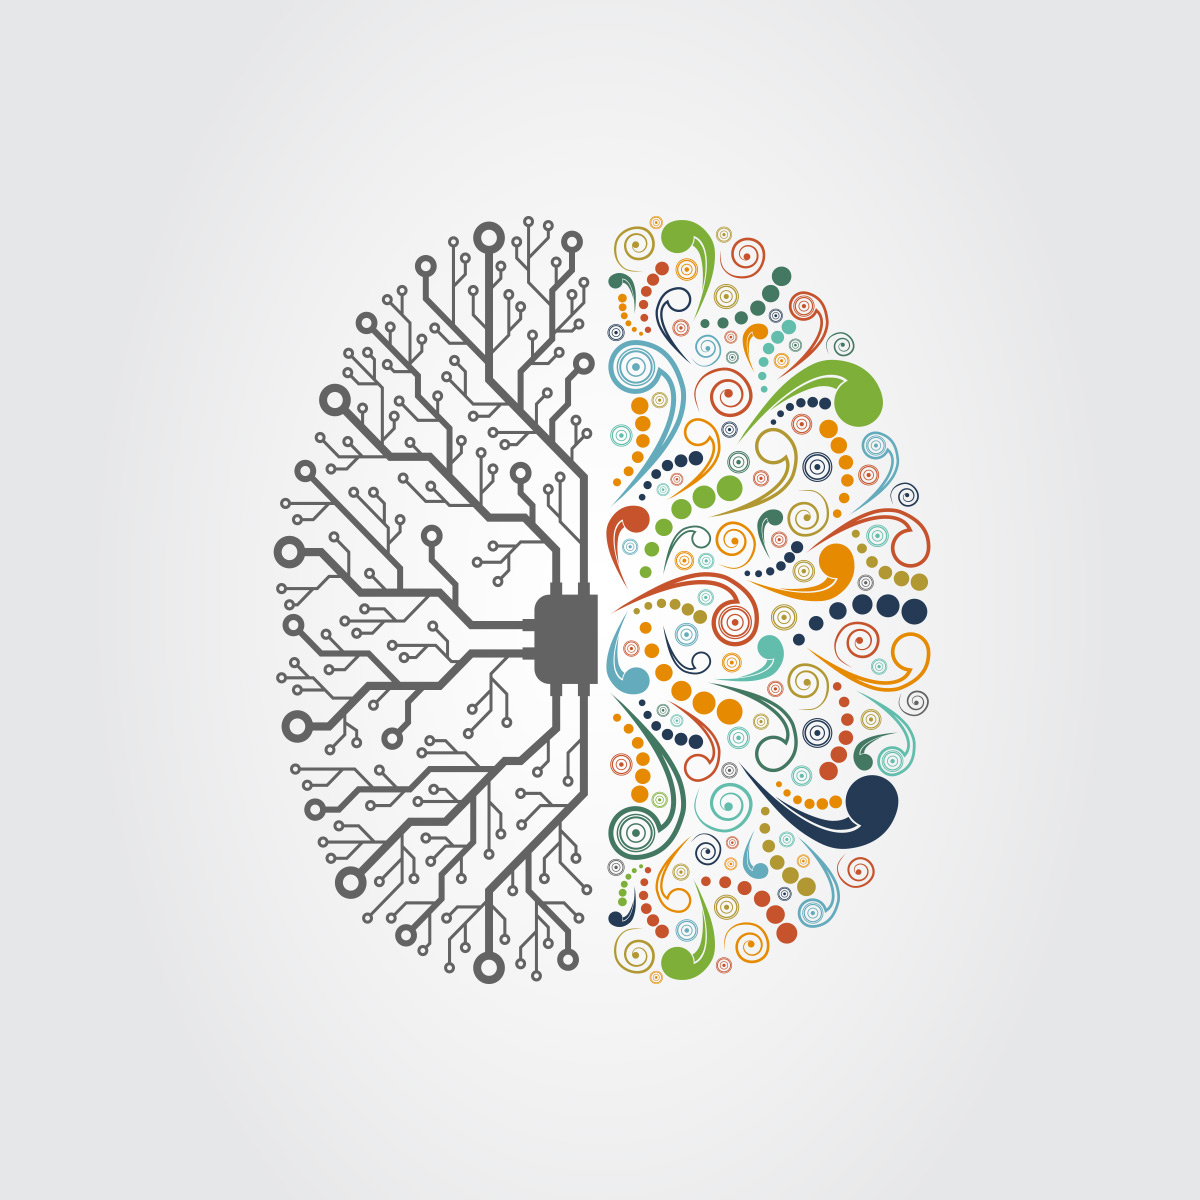 analytical brain vs. creative brain